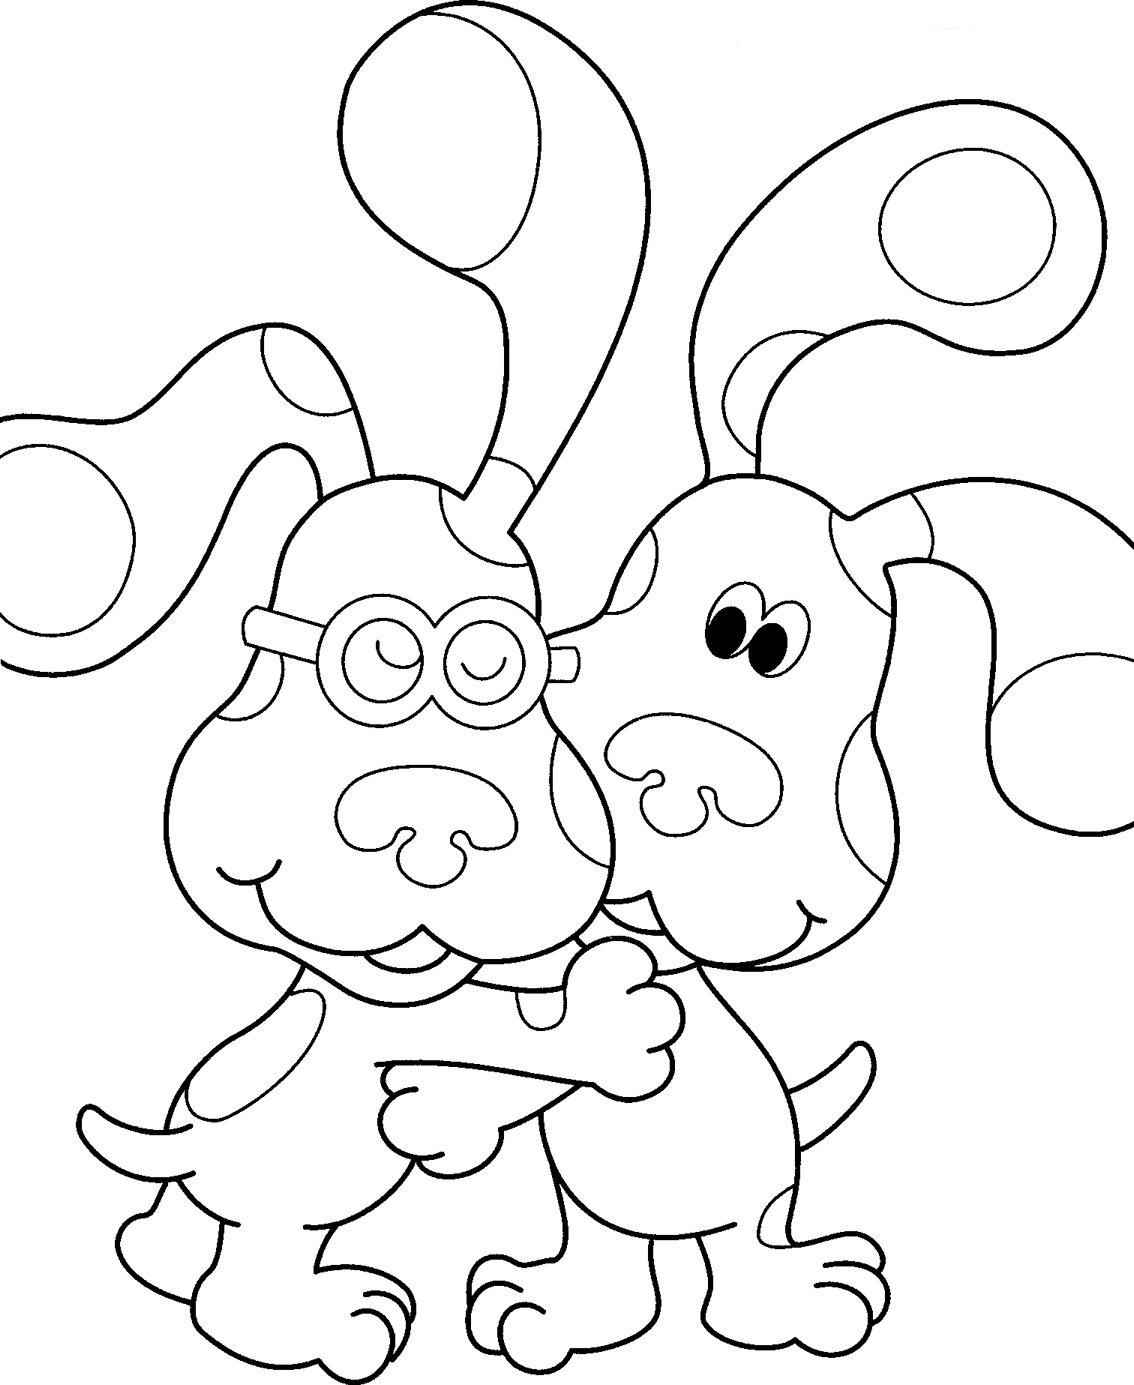 blues clues coloring pages blues clues drawing at getdrawings free download blues clues coloring pages